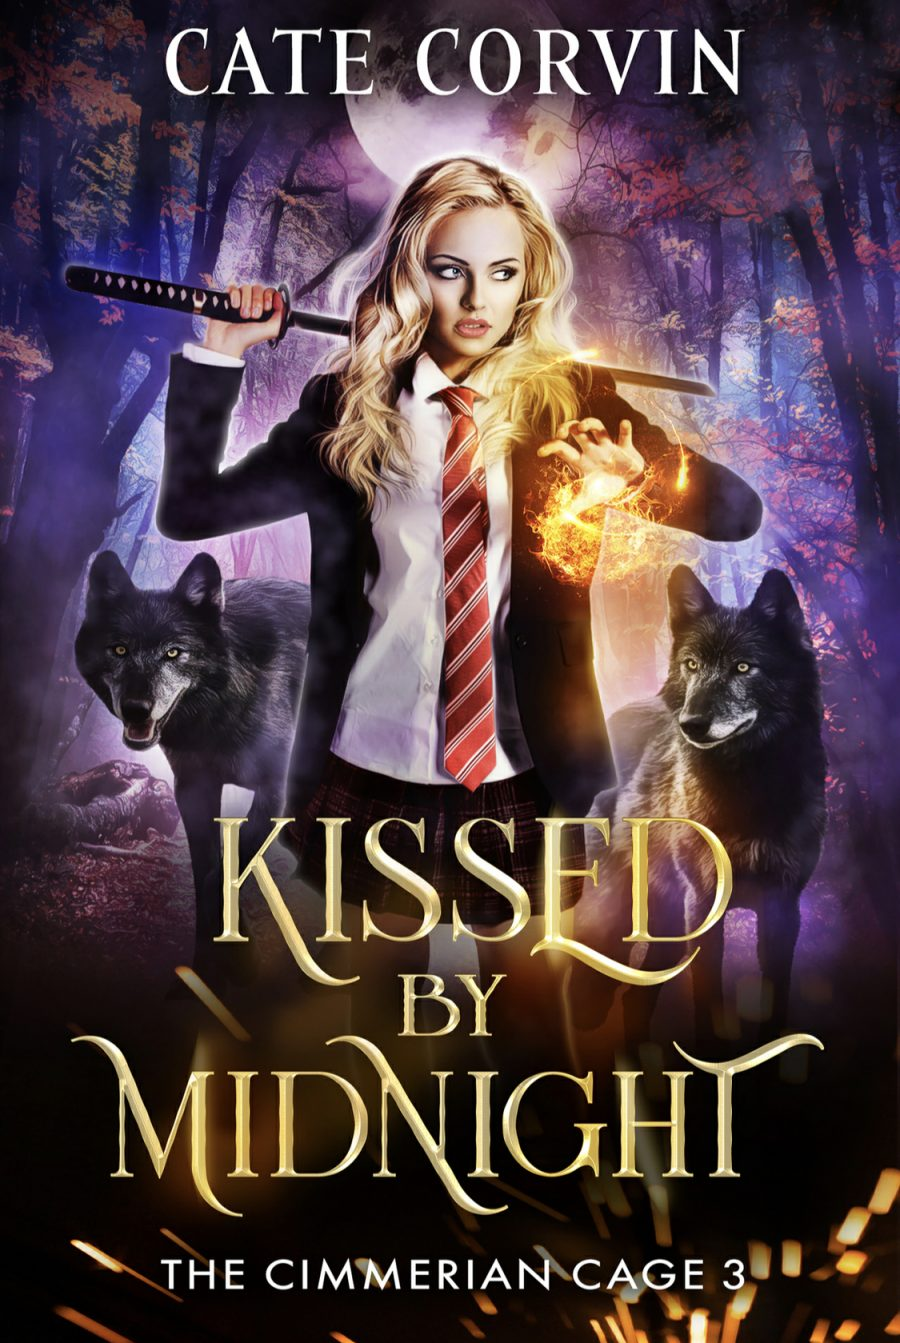 Kissed by Midnight by Cate Corvin - A Book Review #BookReview #MediumBurn #RH #ReverseHarem #WhyChoose #Academy #PNR #HEA #4Star #KindleUnlimited #KU